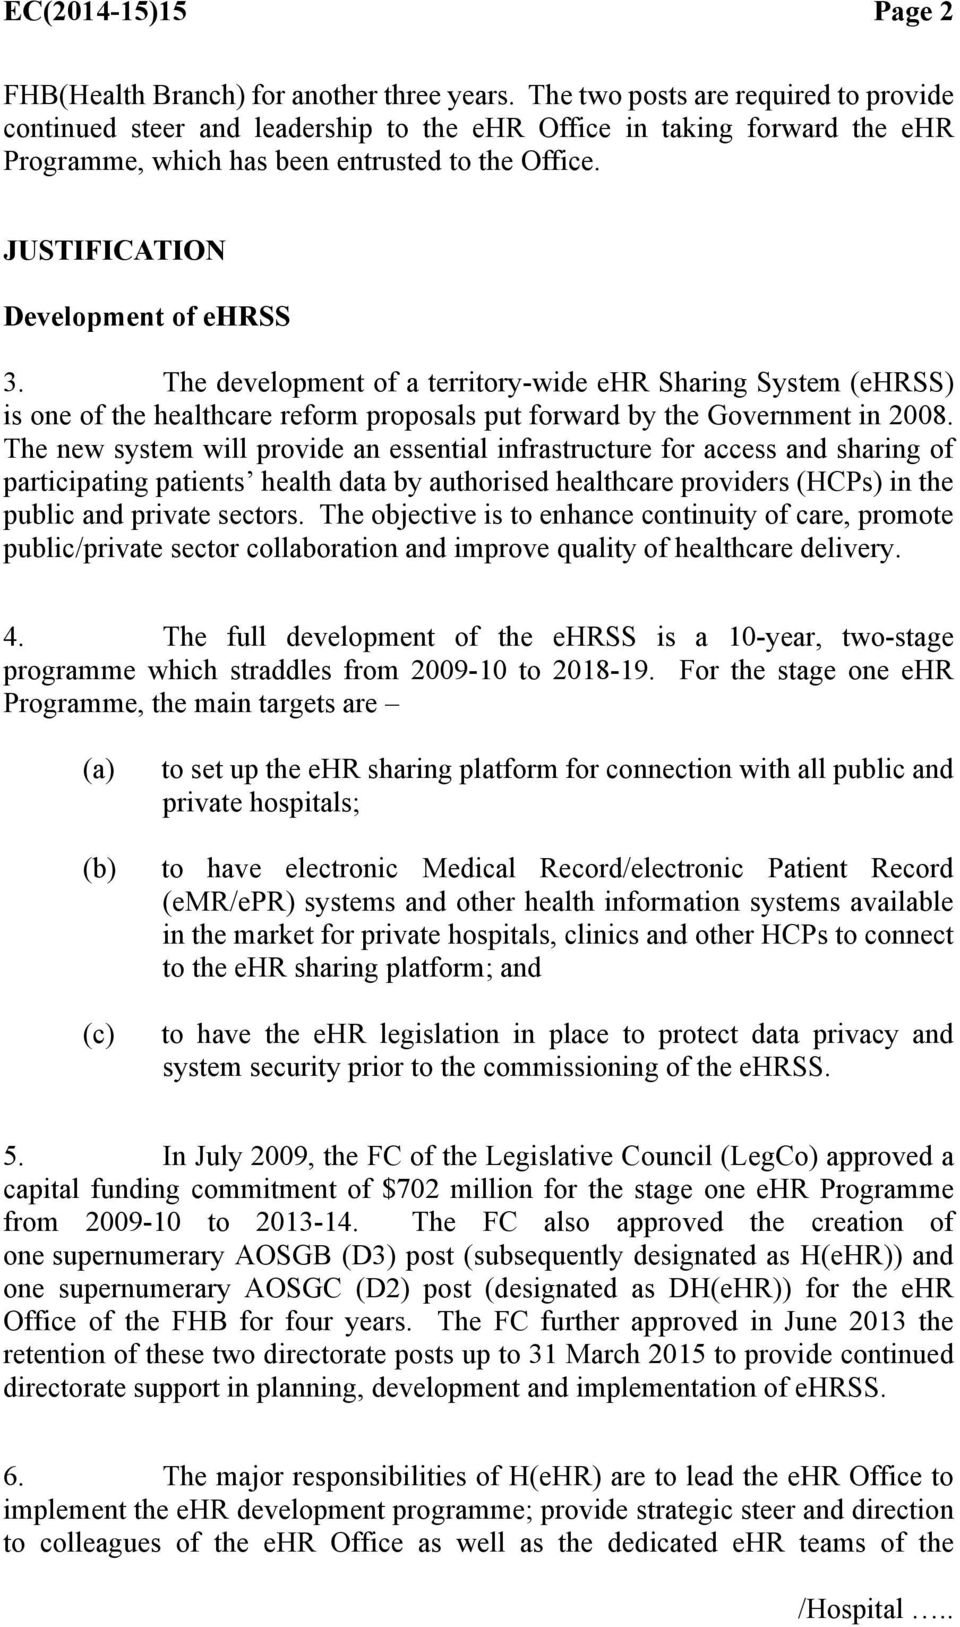 JUSTIFICATION Development of ehrss 3. The development of a territory-wide ehr Sharing System (ehrss) is one of the healthcare reform proposals put forward by the Government in 2008.